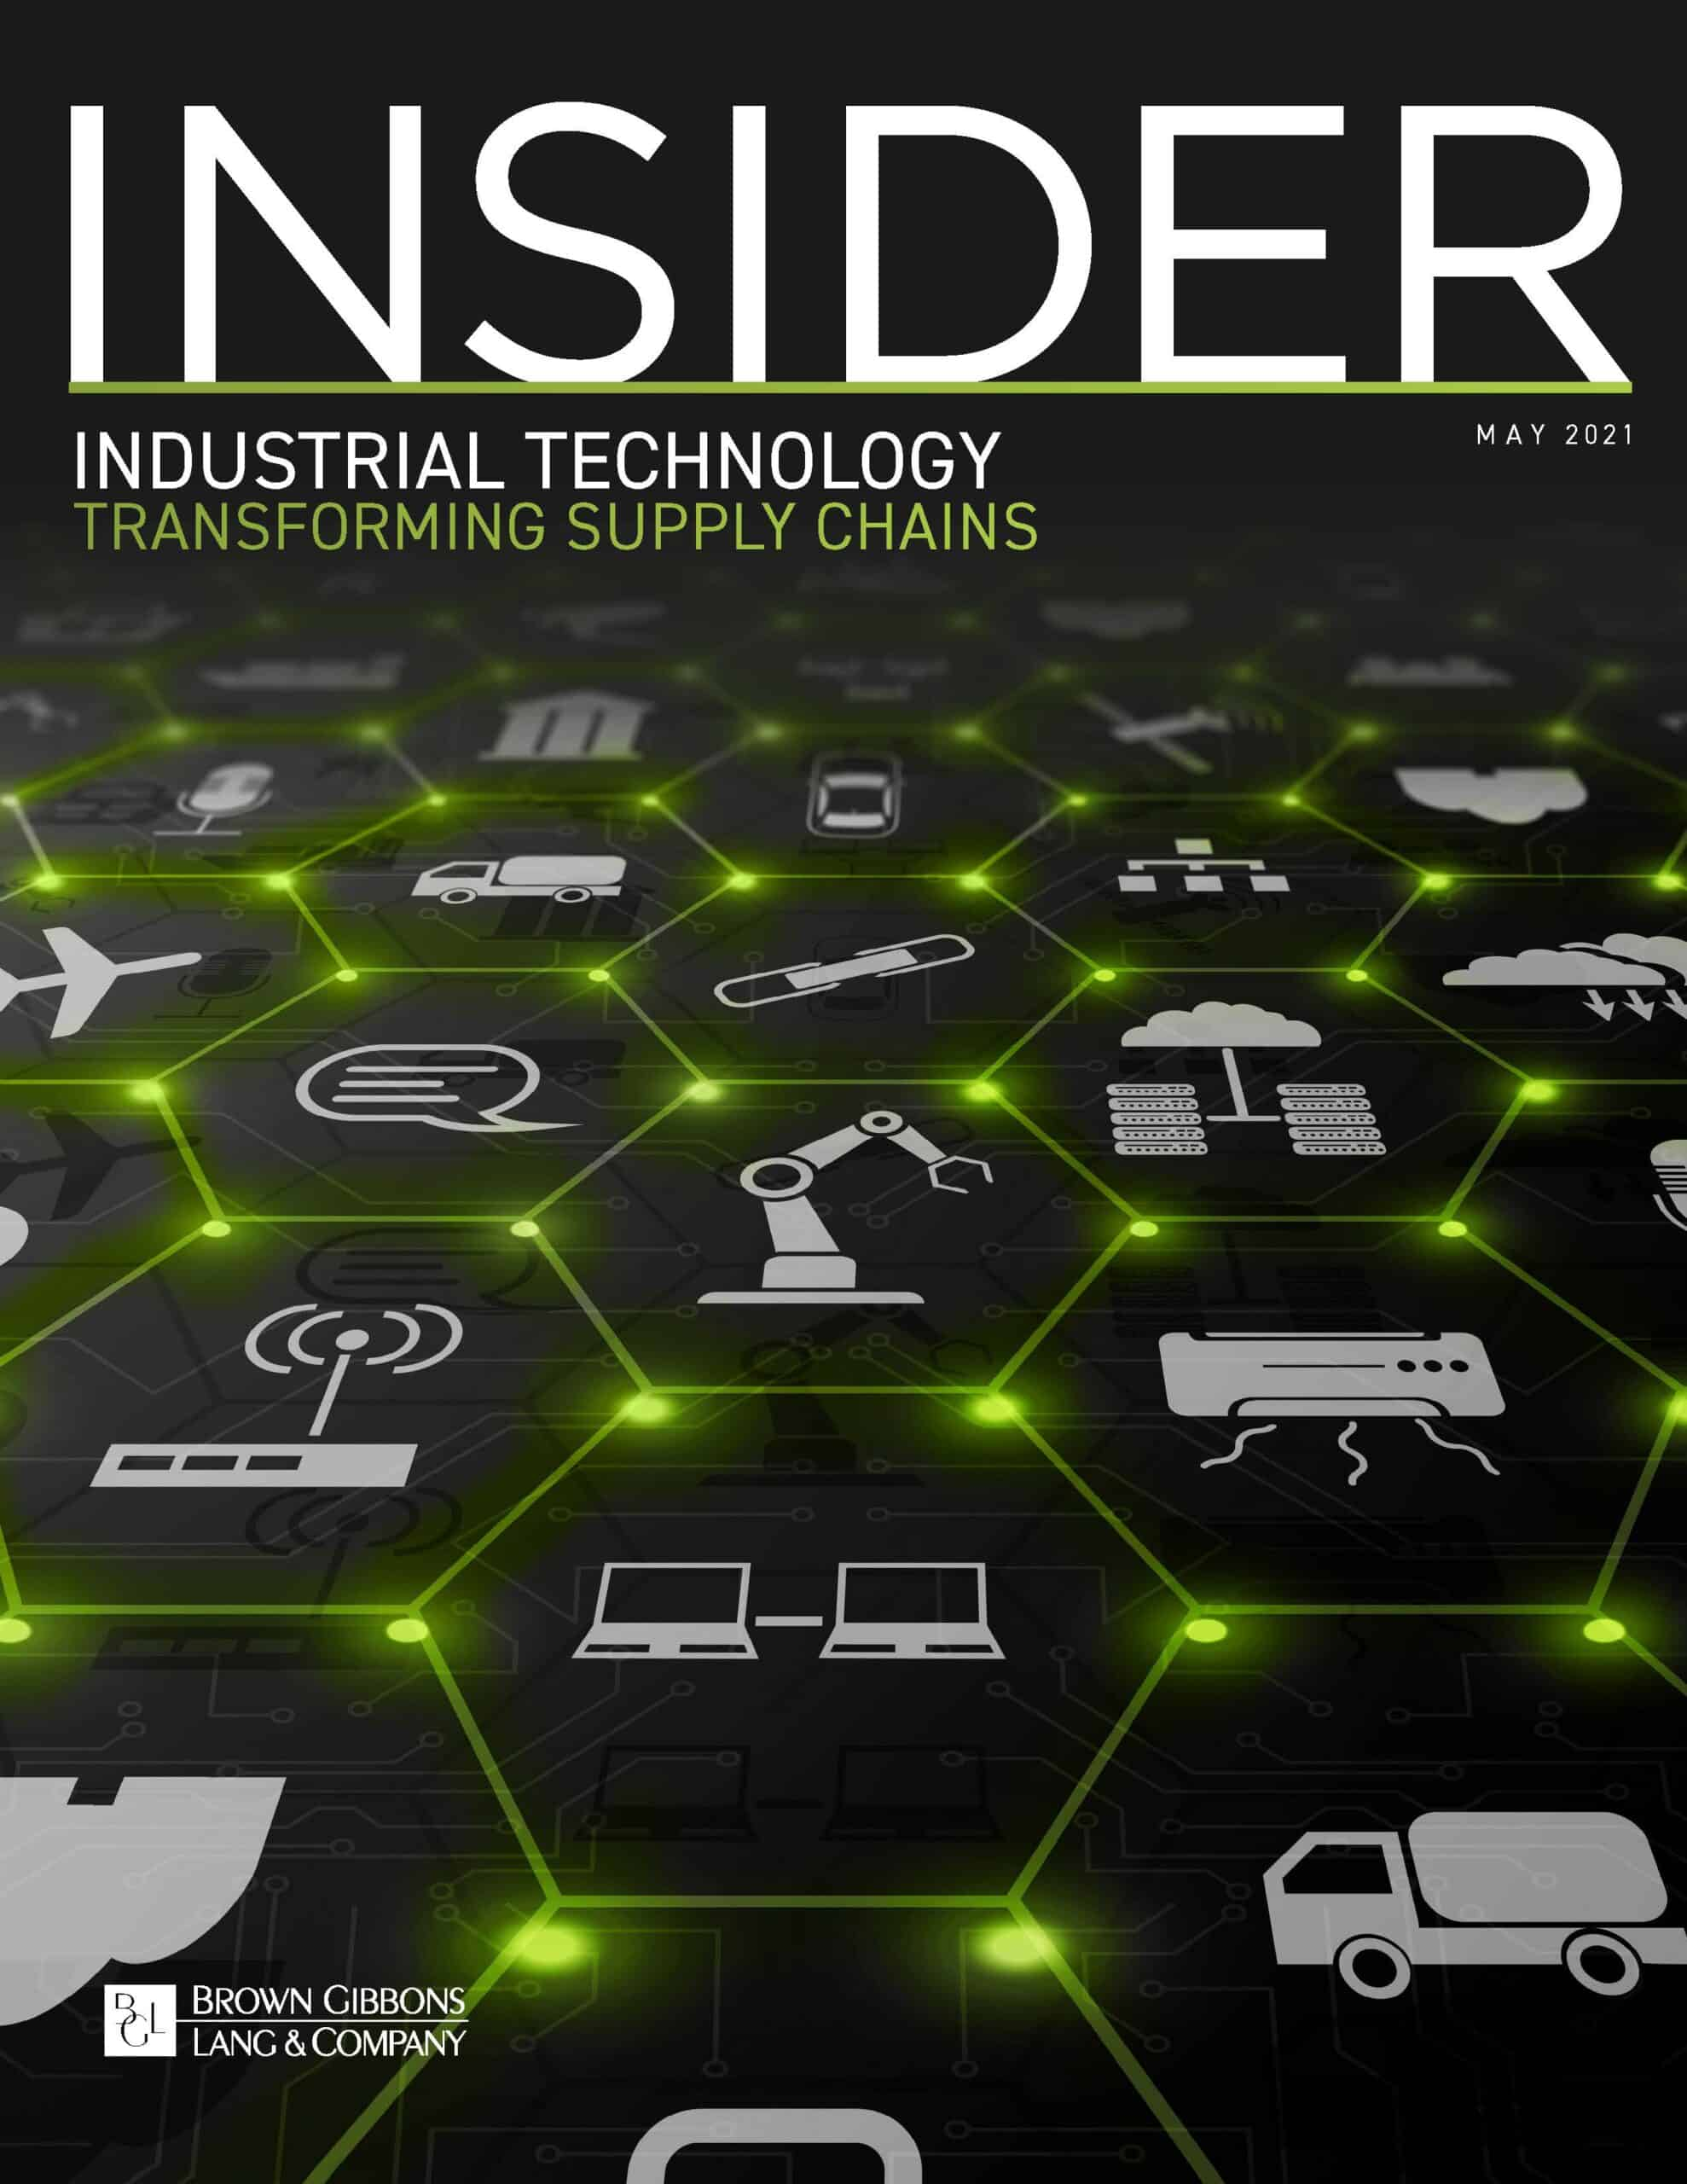 Image for The BGL Industrial Technology Insider – Transforming Supply Chains Research